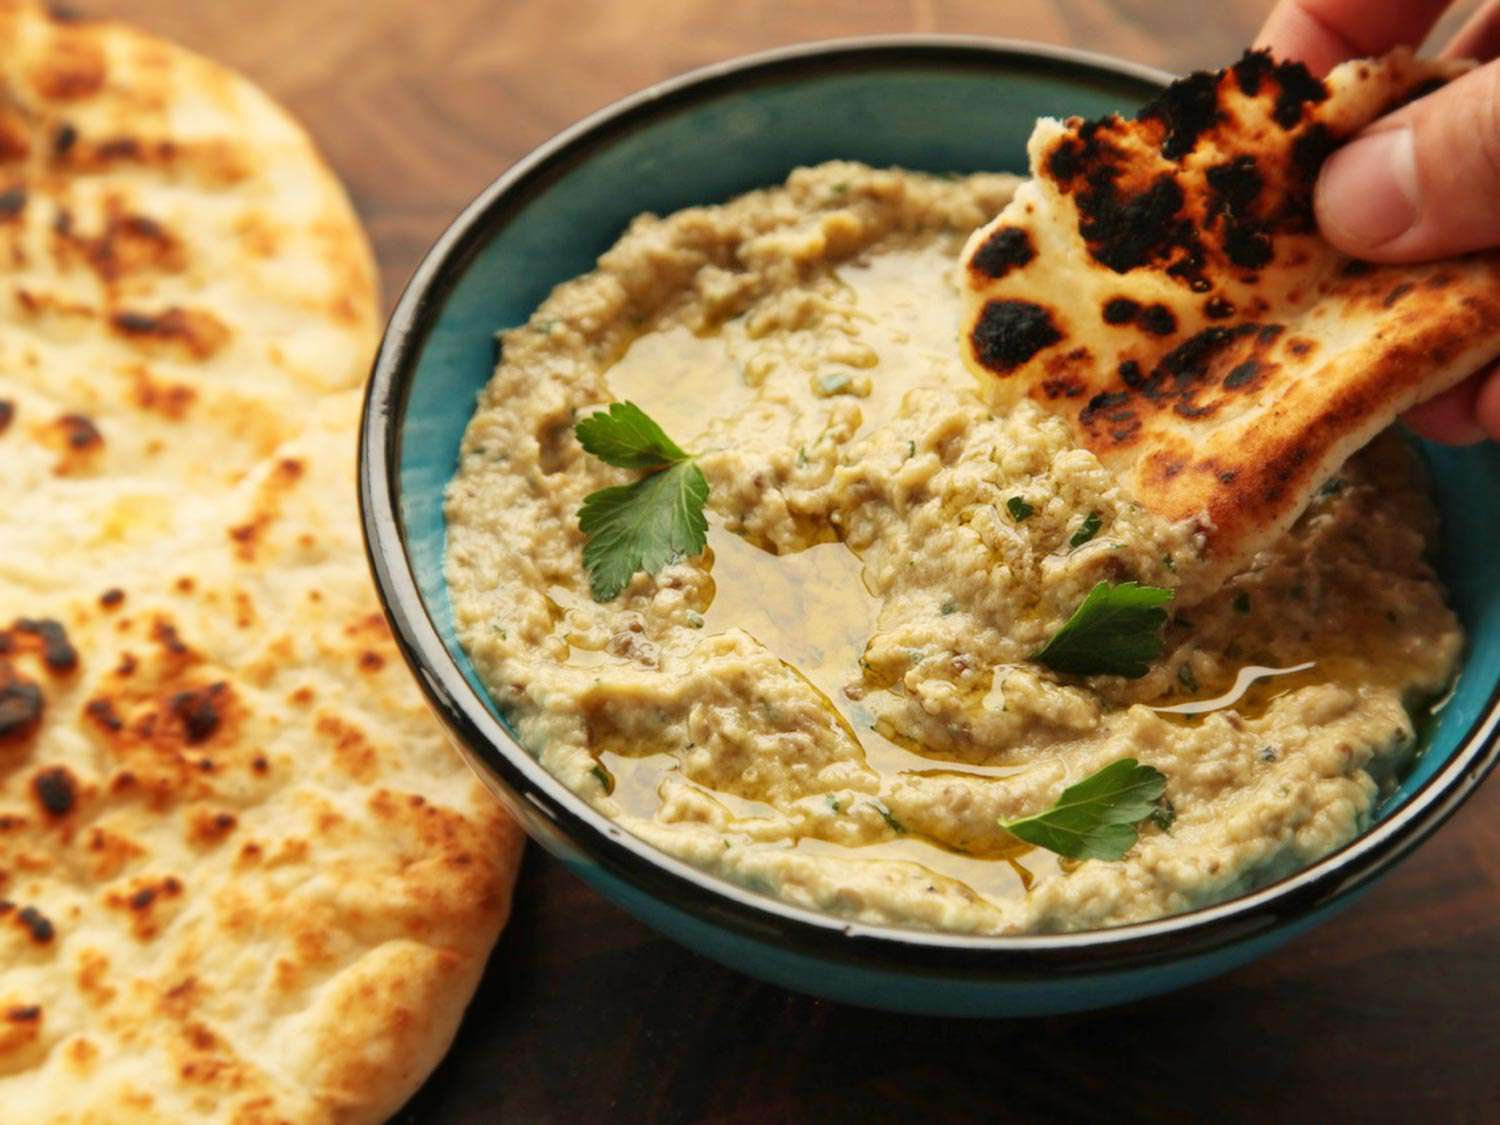 20170722-middle-eastern-recipes-roundup-03.jpg